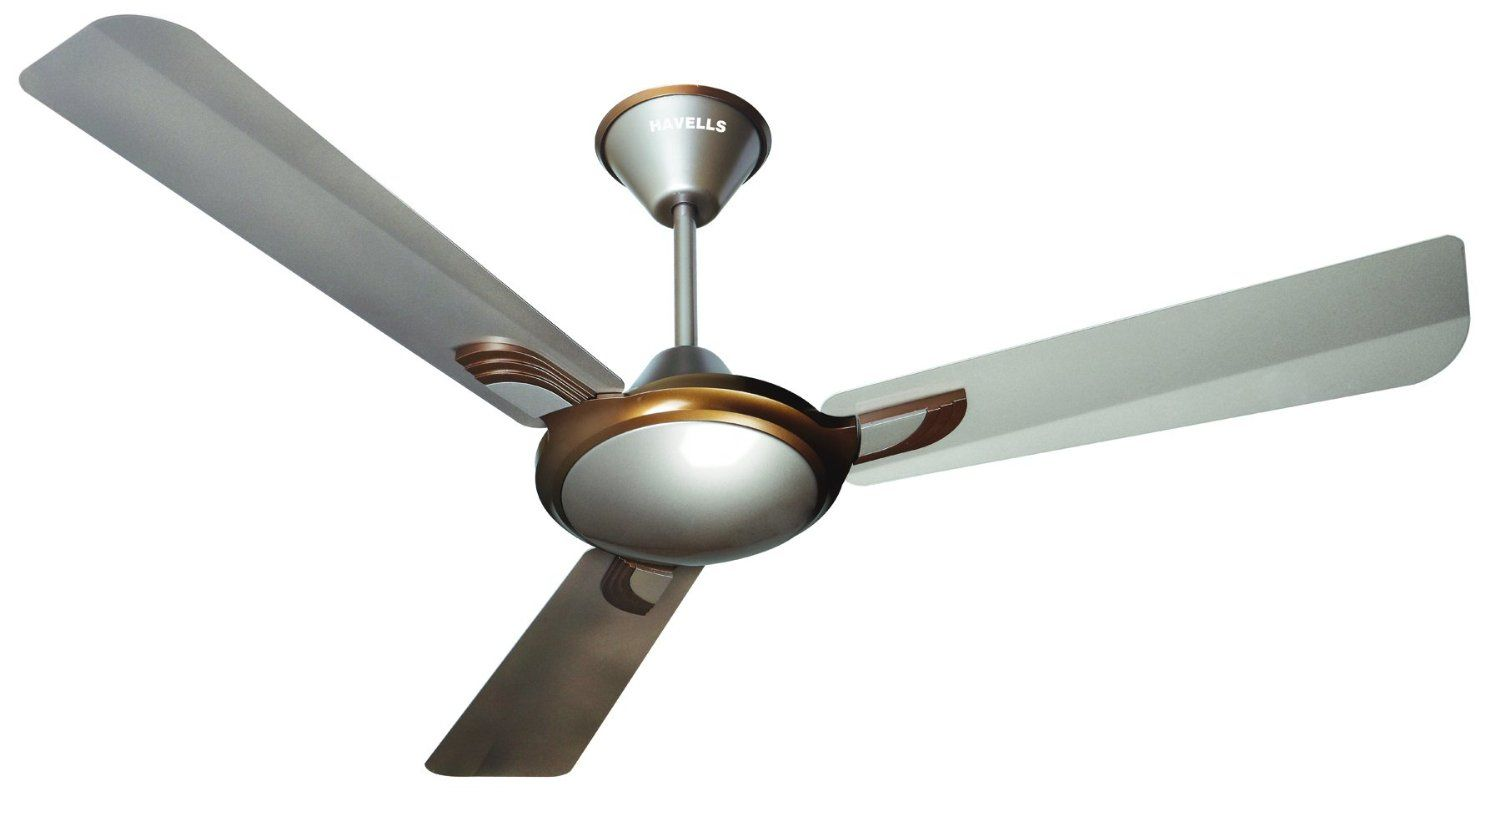 Wonderful Ceiling Fan For Interior Home Design: Exquisite Ceiling ...